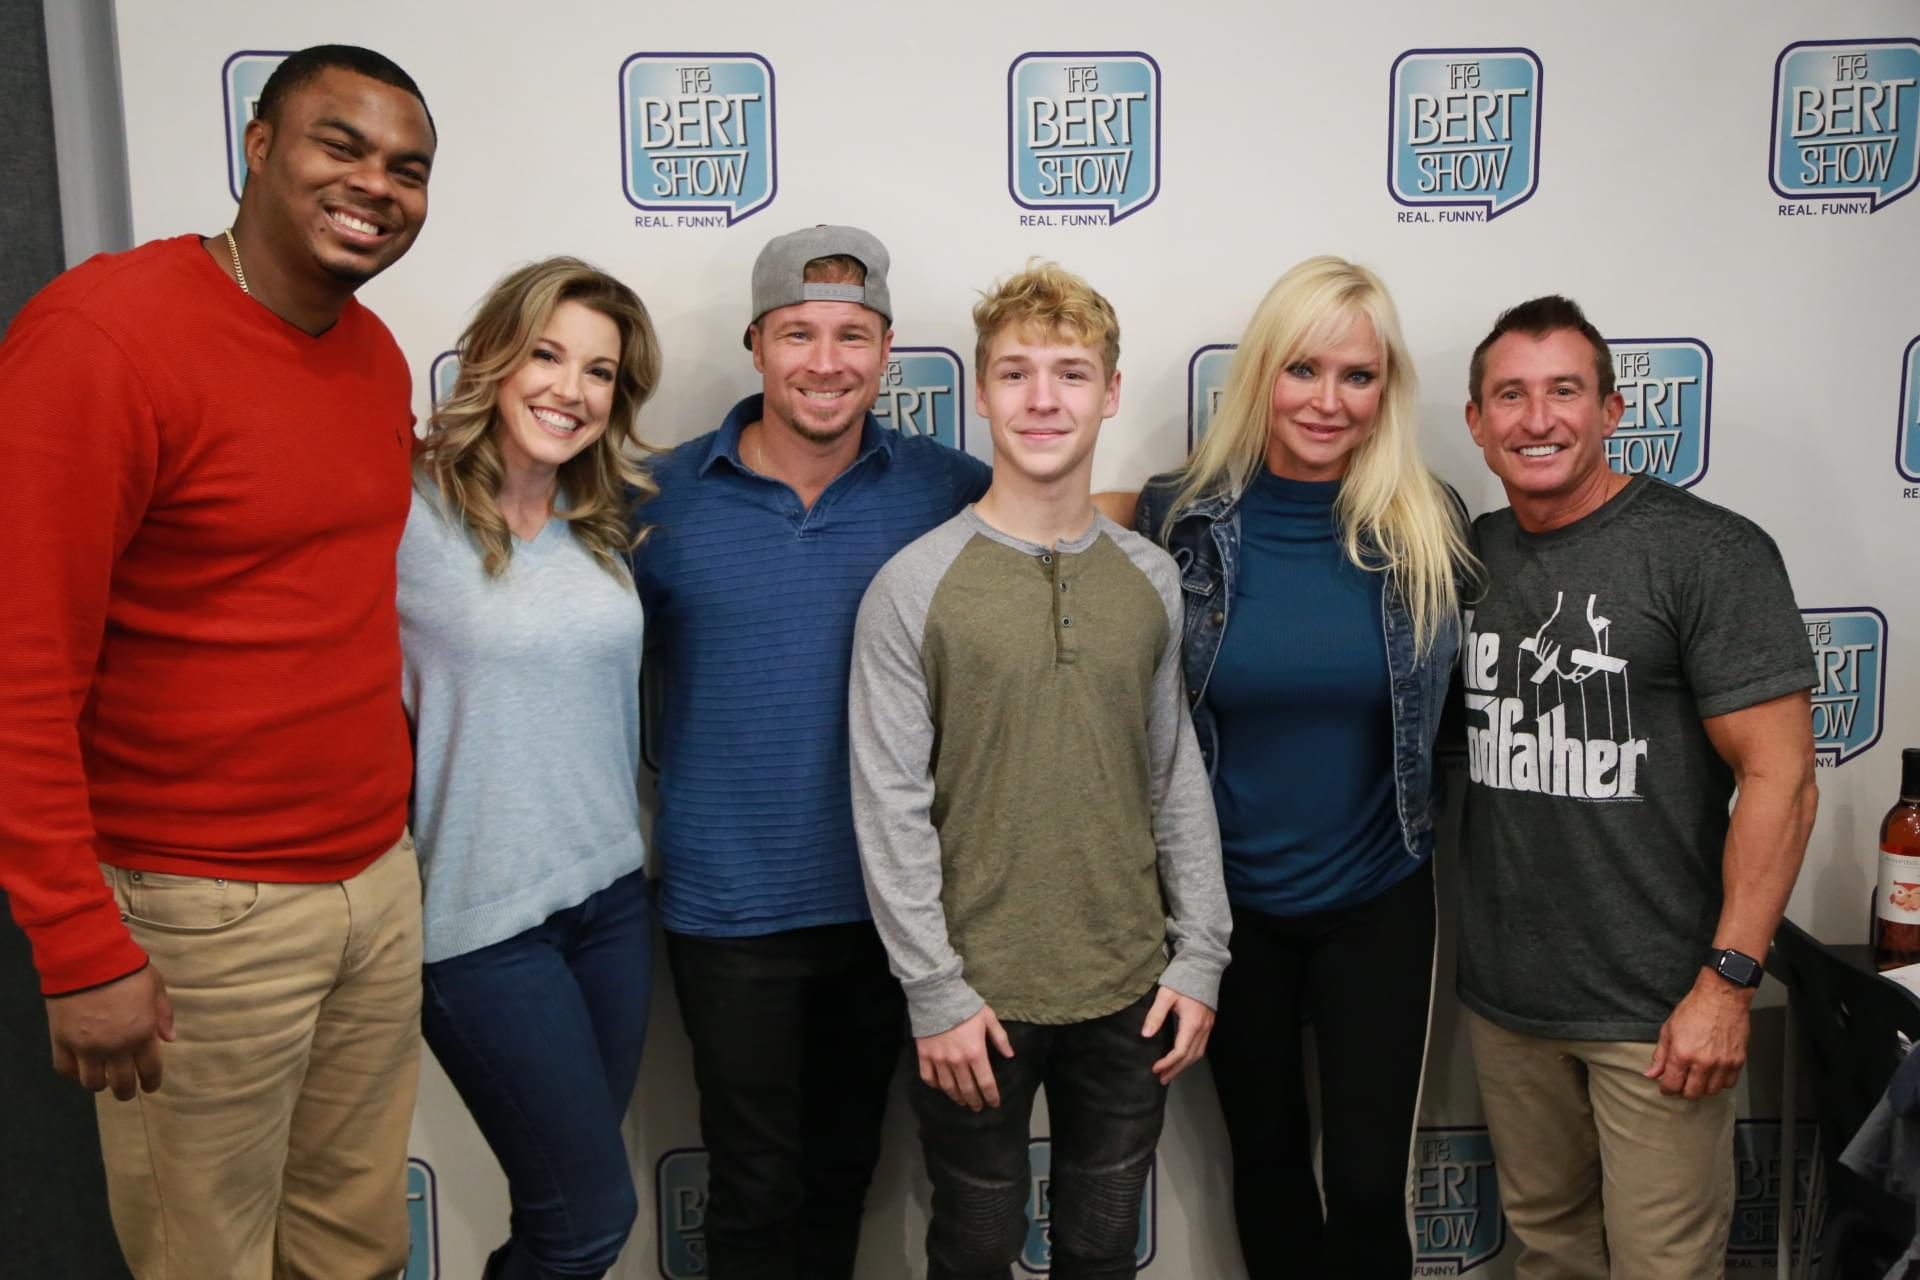 Brian Littrell from the Backstreet Boys & His Family Join The Bert Show